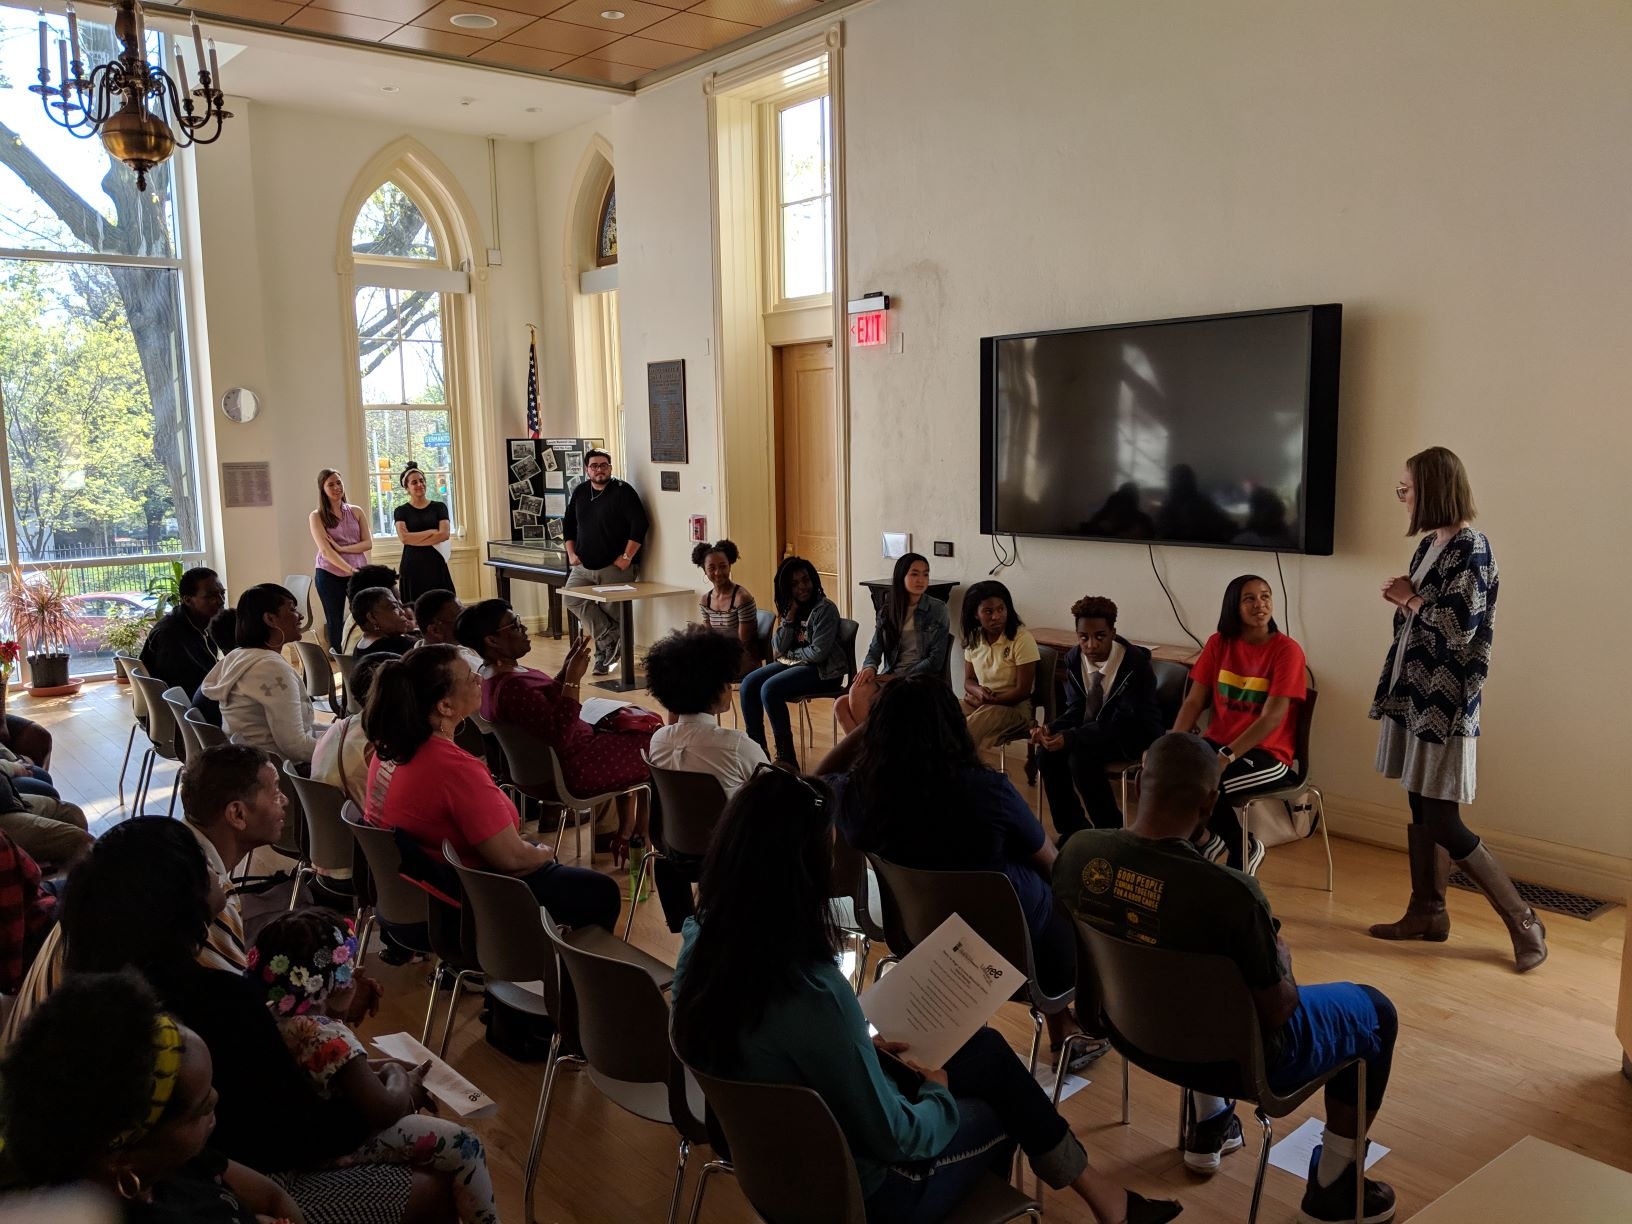 Philadelphia Young Playwright's Library Residency, which received grant from the Mayor's Fund in its 2018 cycle.